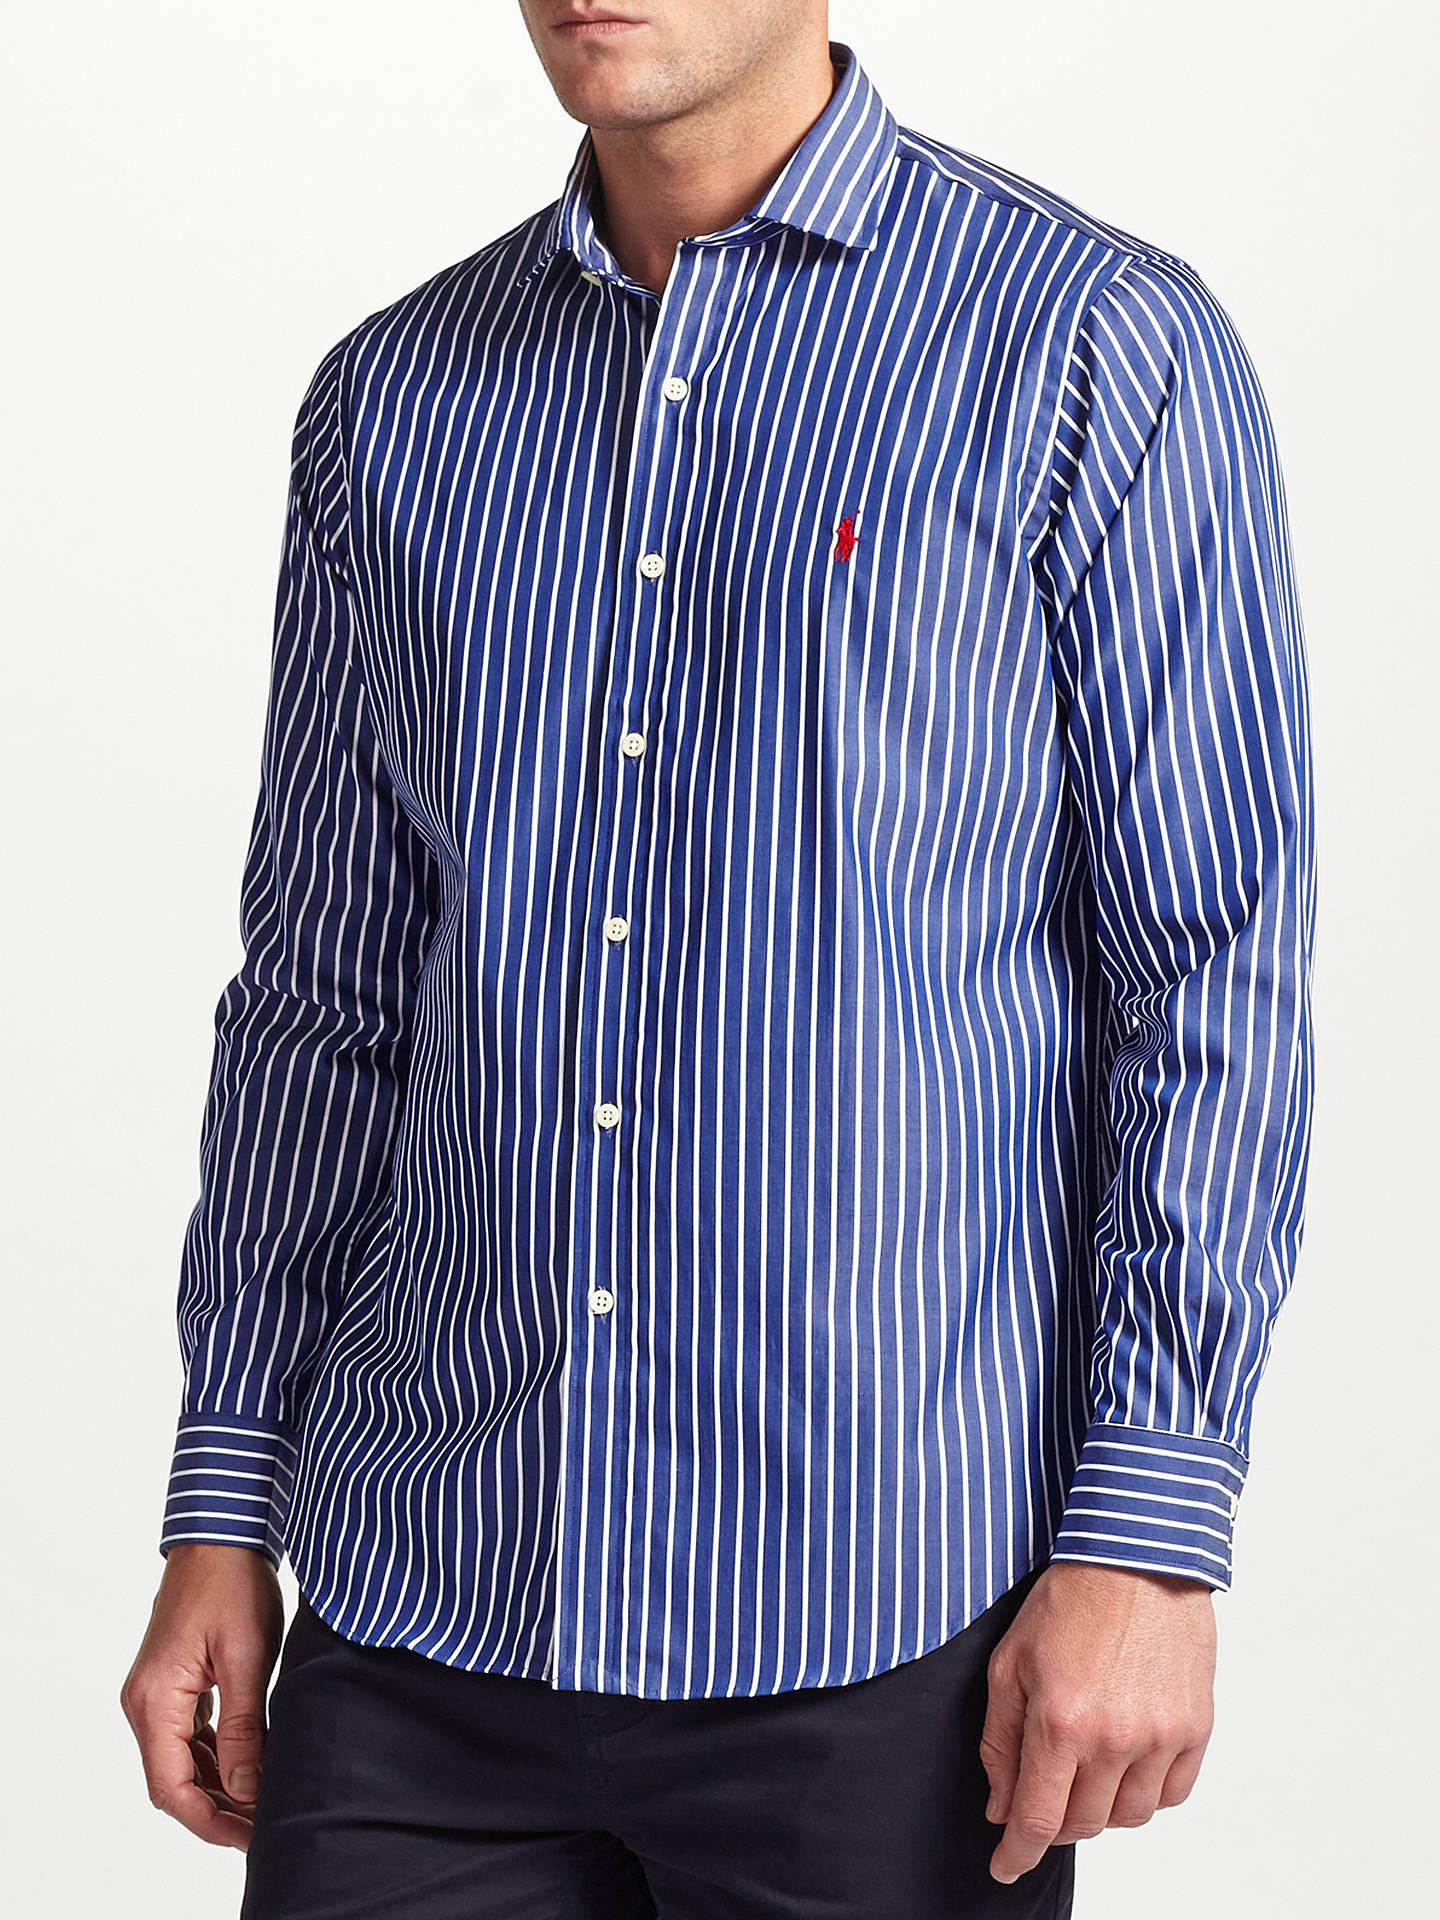 598e8fa0 Buy Polo Ralph Lauren Striped Shirt, Blue/White, S Online at johnlewis.